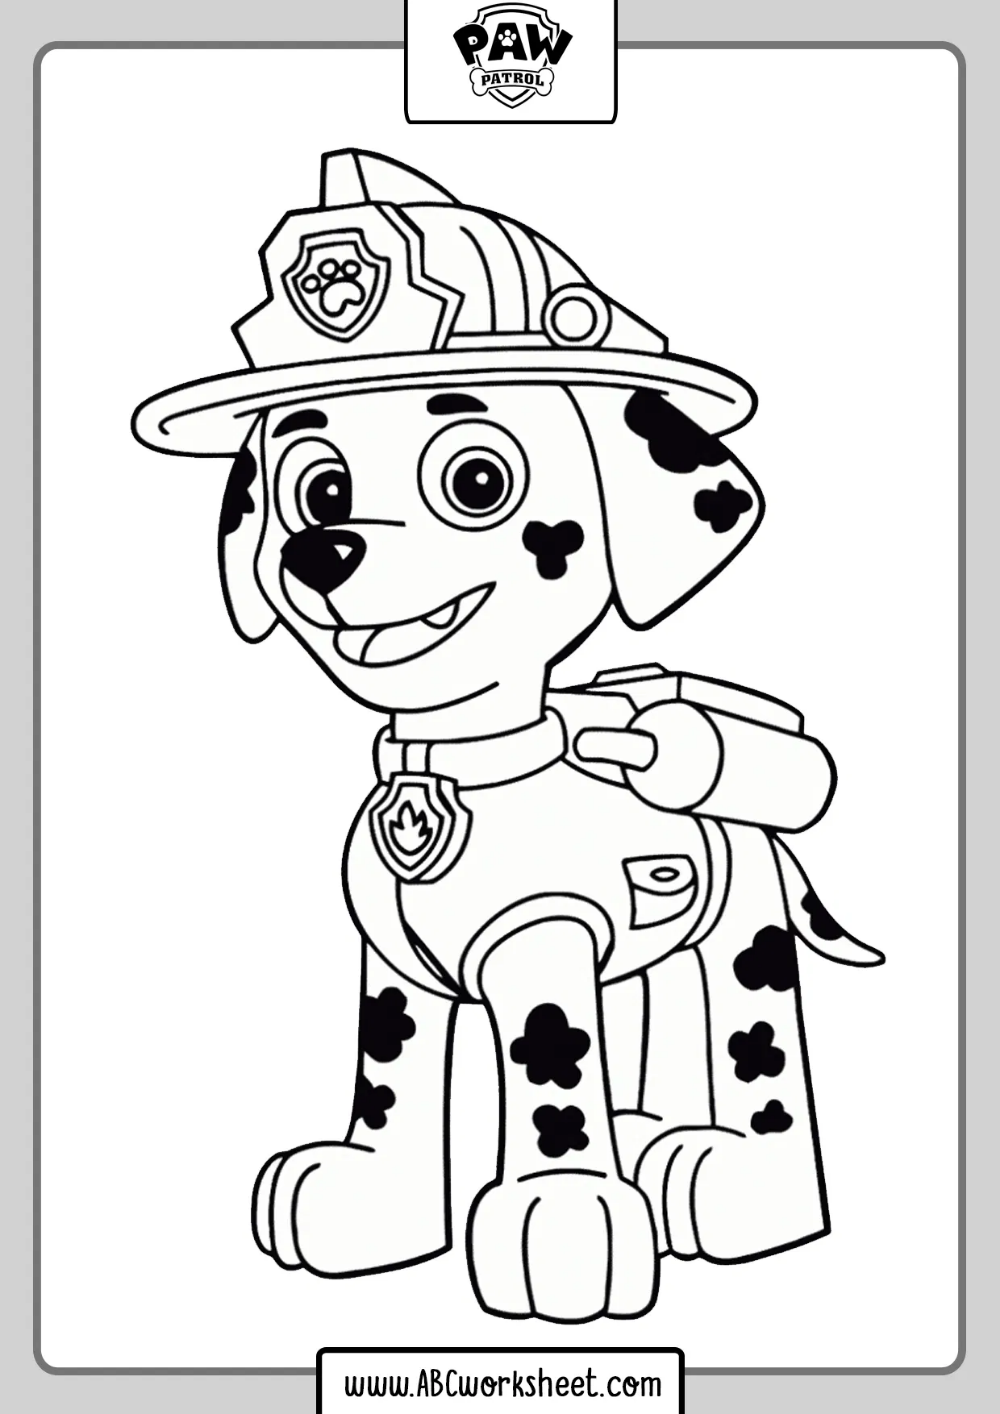 paw patrol characters americangrassrootscoalition page 104 44 tremendous characters paw patrol